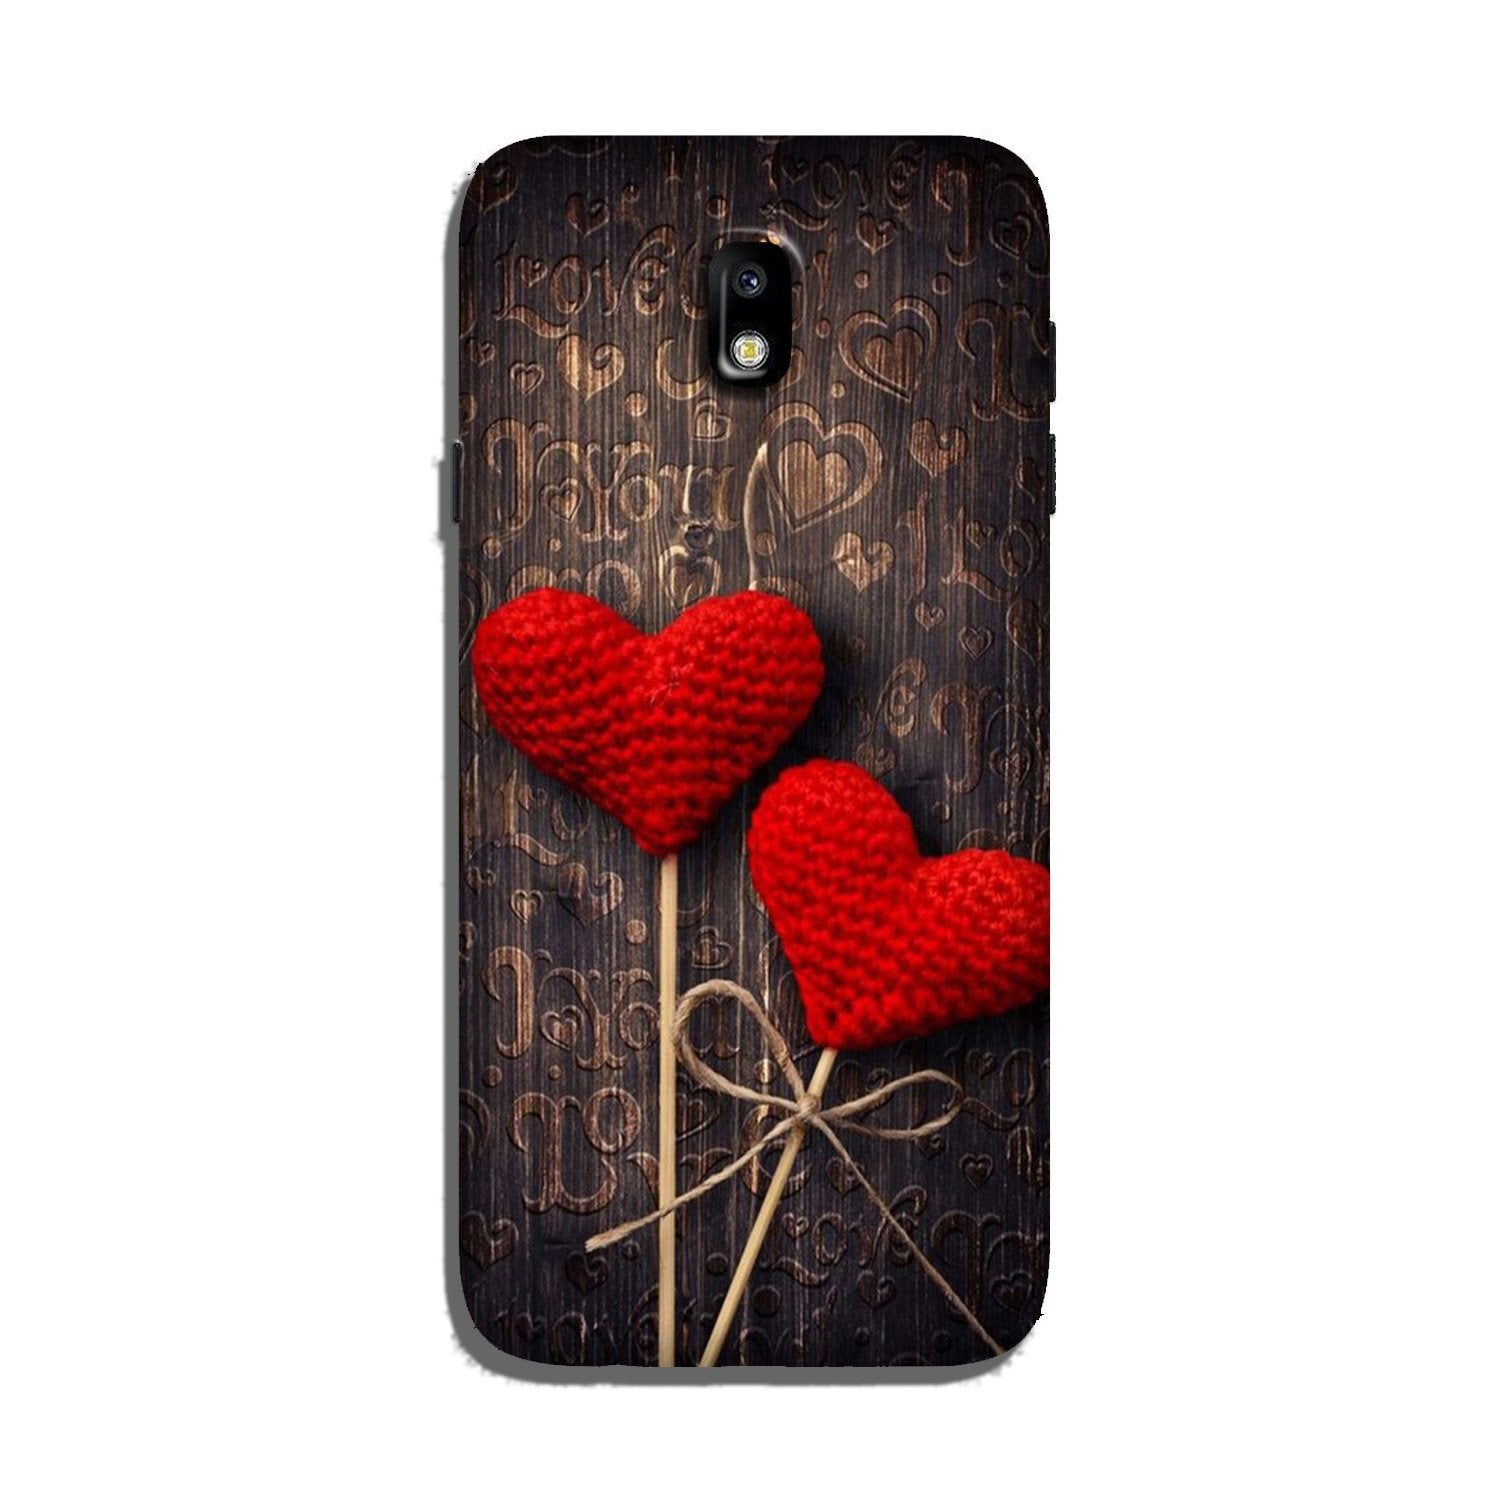 Red Hearts Case for Galaxy J3 Pro